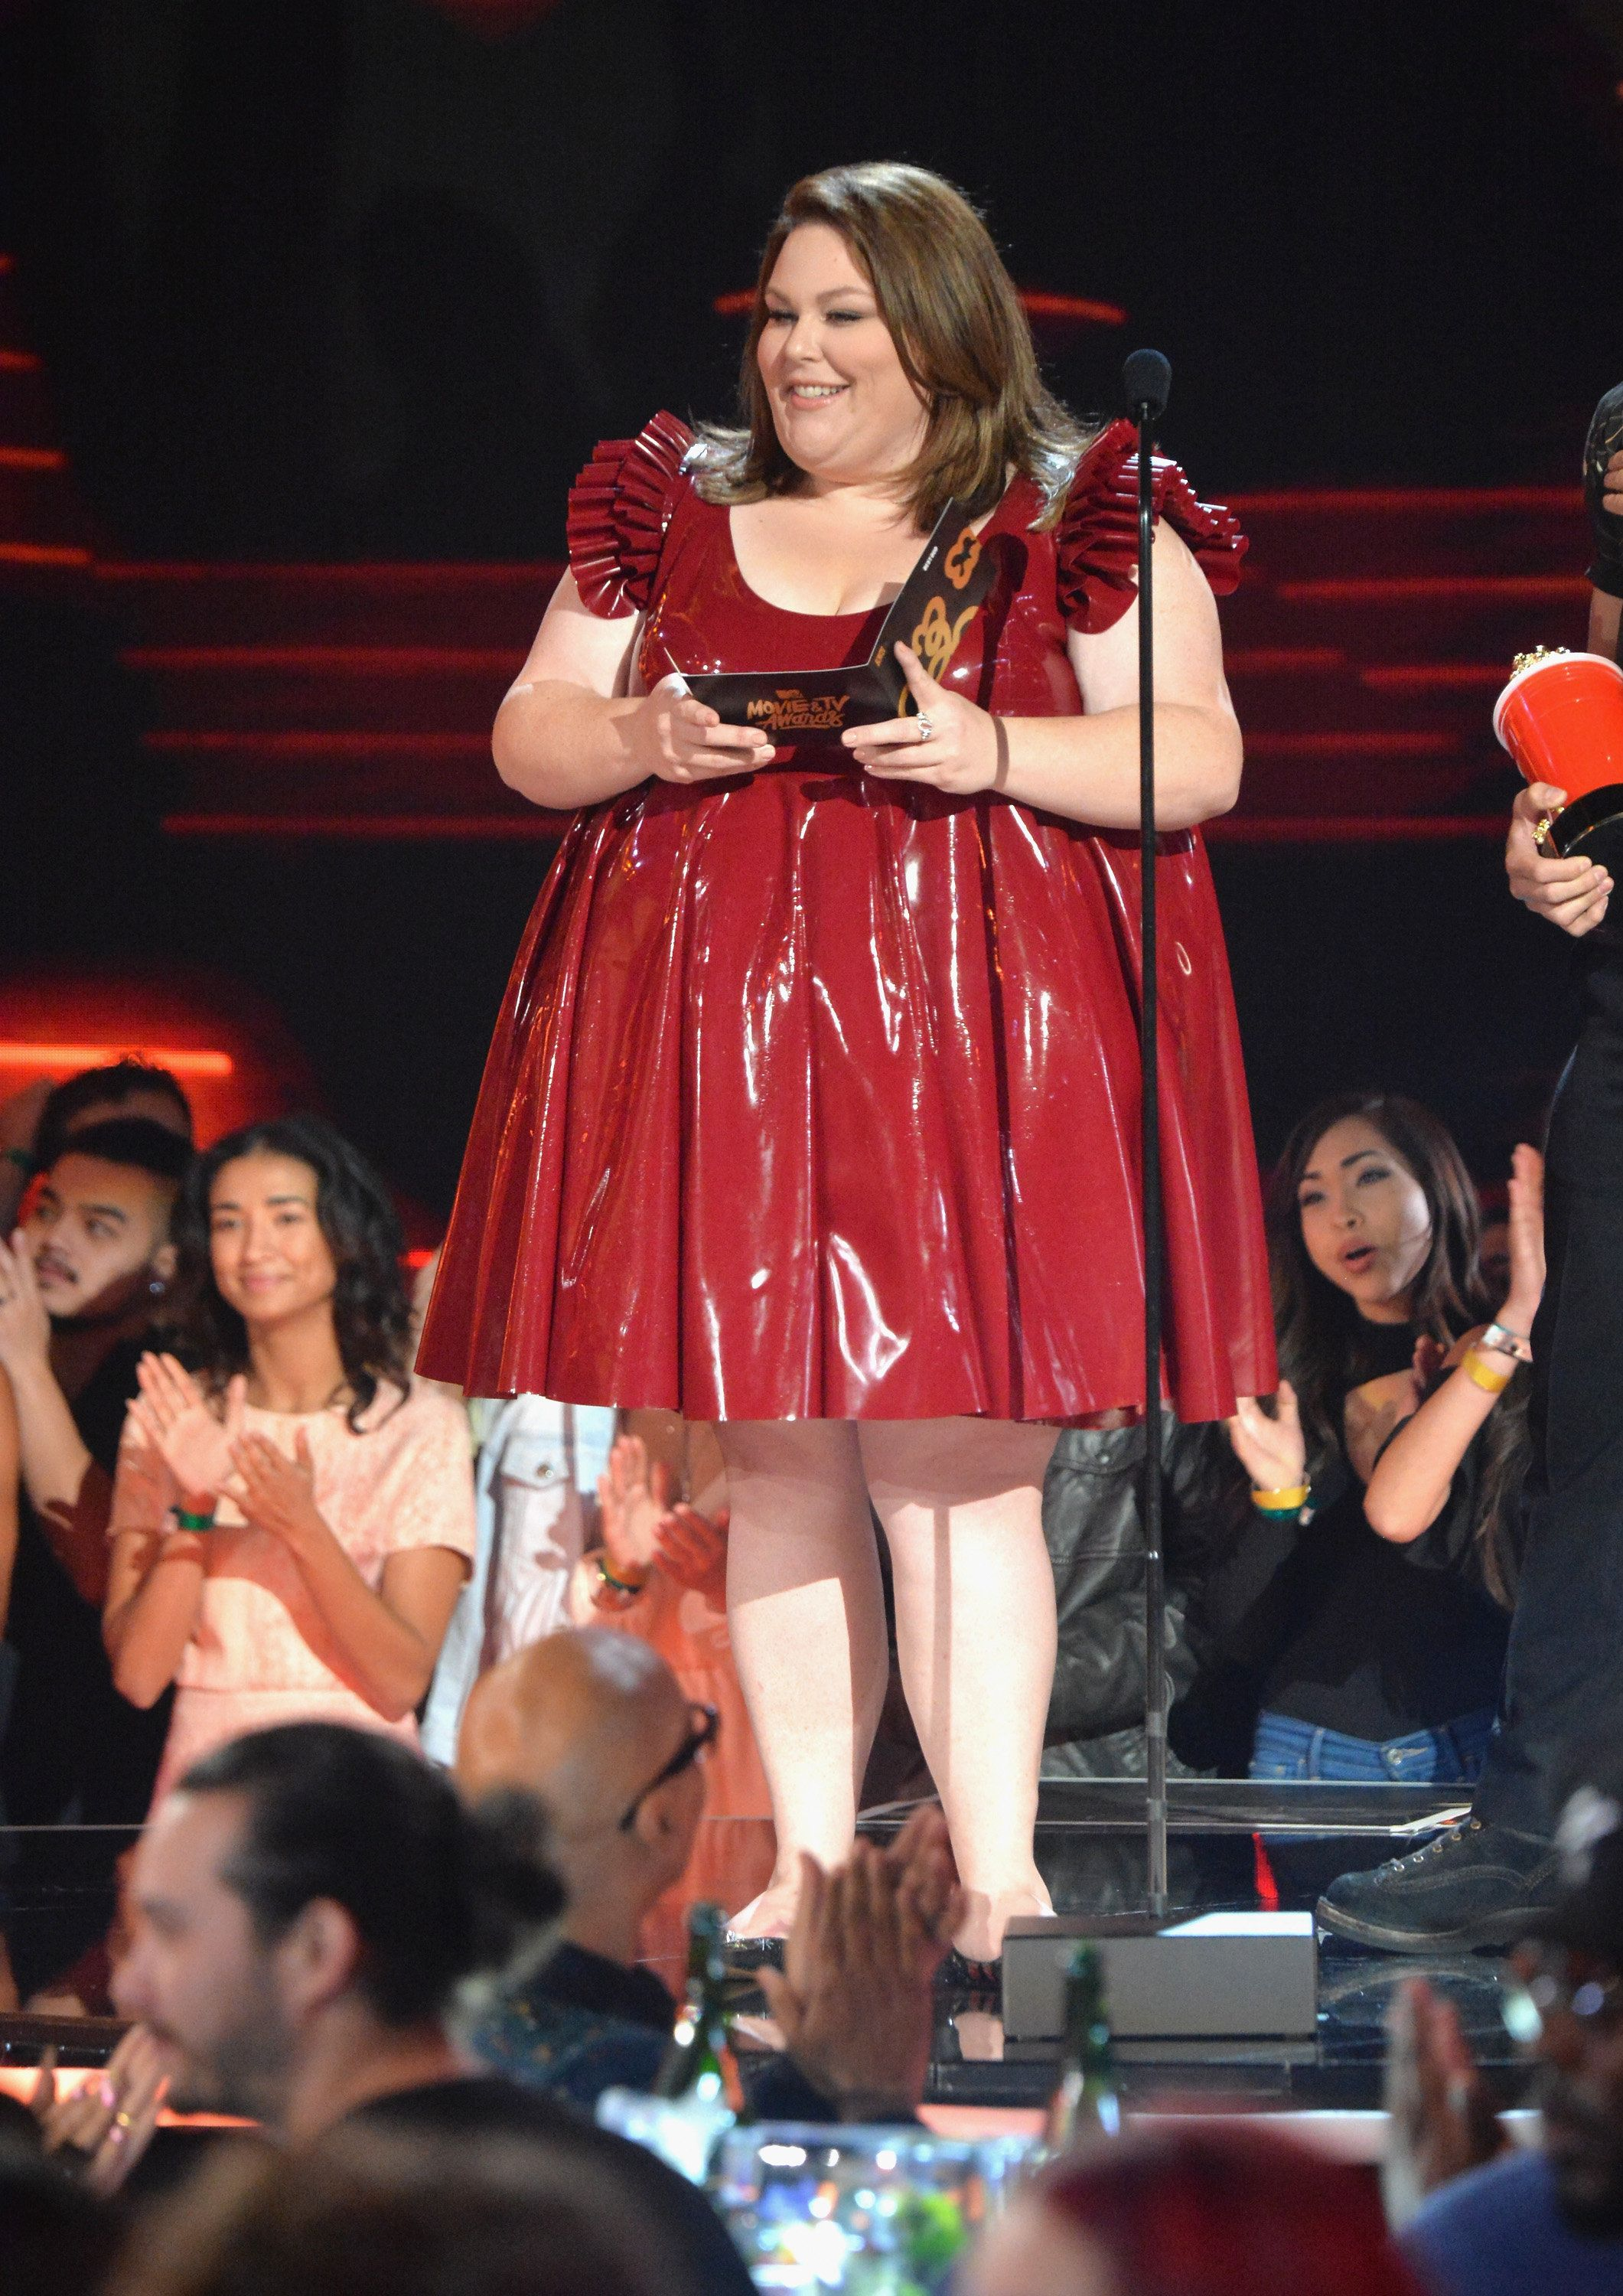 LOS ANGELES, CA - MAY 07:  Actor Chrissy Metz speaks onstage during the 2017 MTV Movie And TV Awards at The Shrine Auditorium on May 7, 2017 in Los Angeles, California.  (Photo by Jeff Kravitz/FilmMagic)